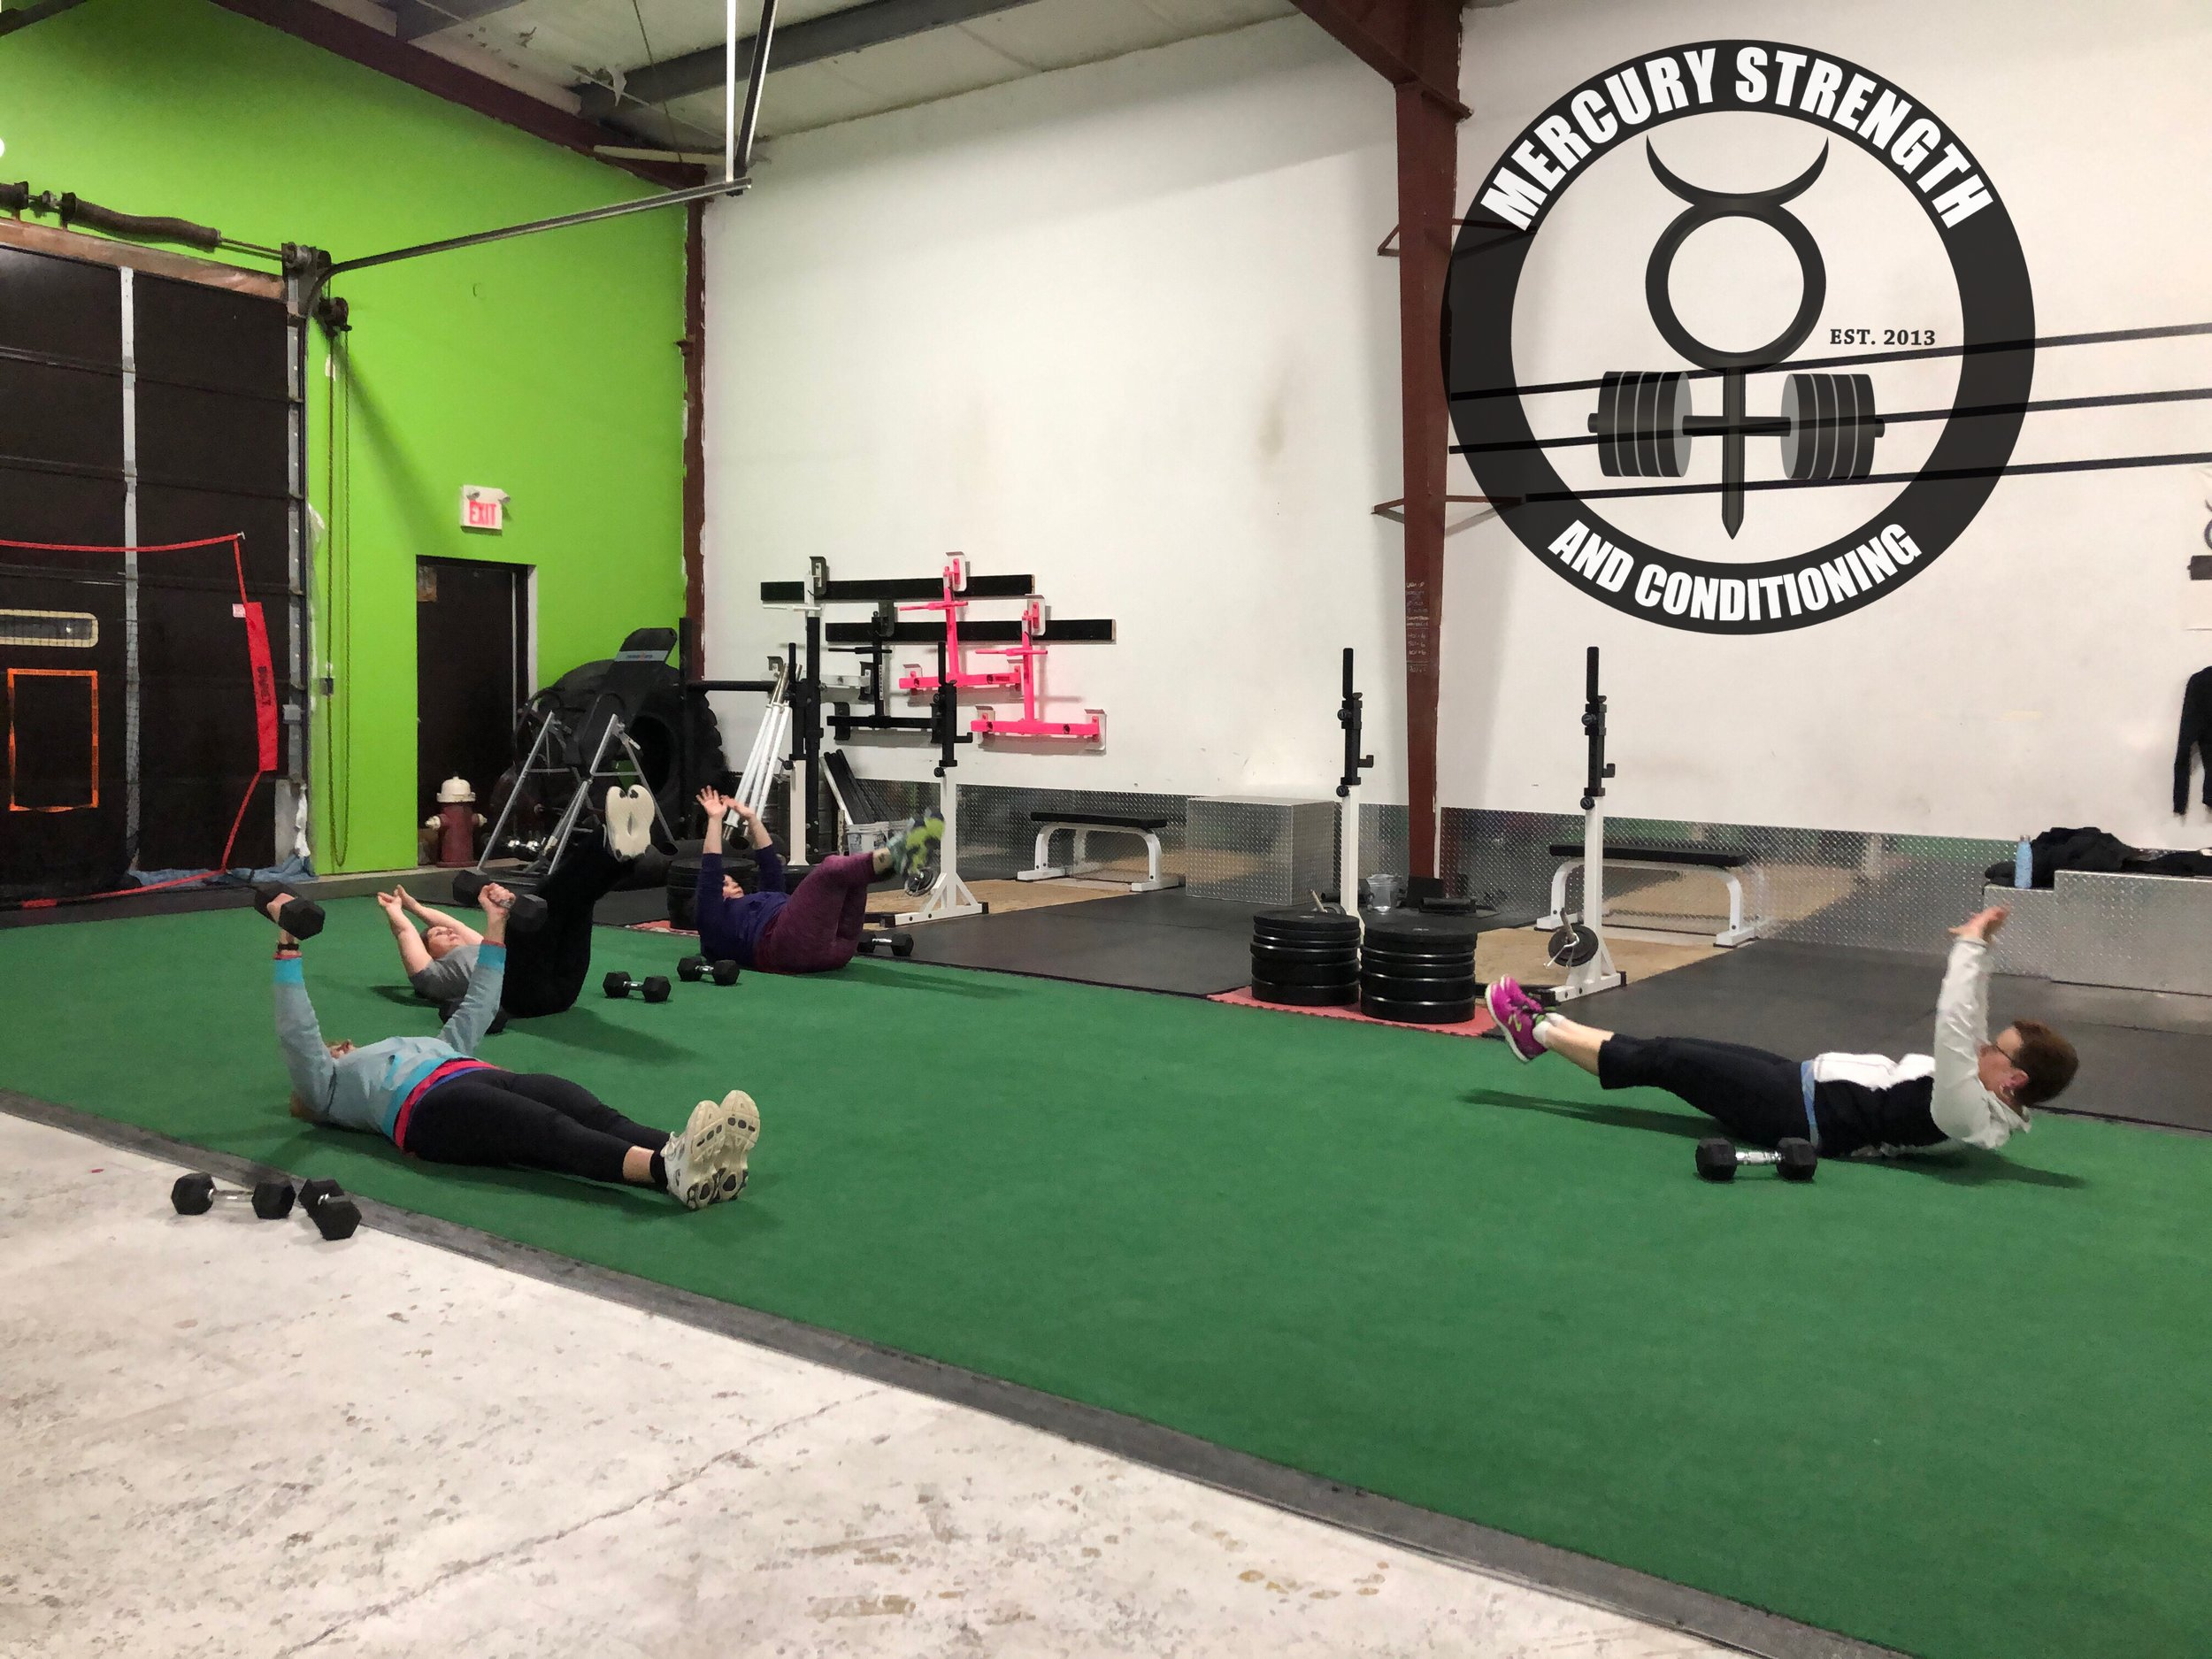 Gym-powerlifting-Olympic lifting-fitness-personal training-training-bootcamp-crossfit-kingston-kingston gym-kids-mercury-strength-conditioning-athlete-hollow rock-dumbbell floor press